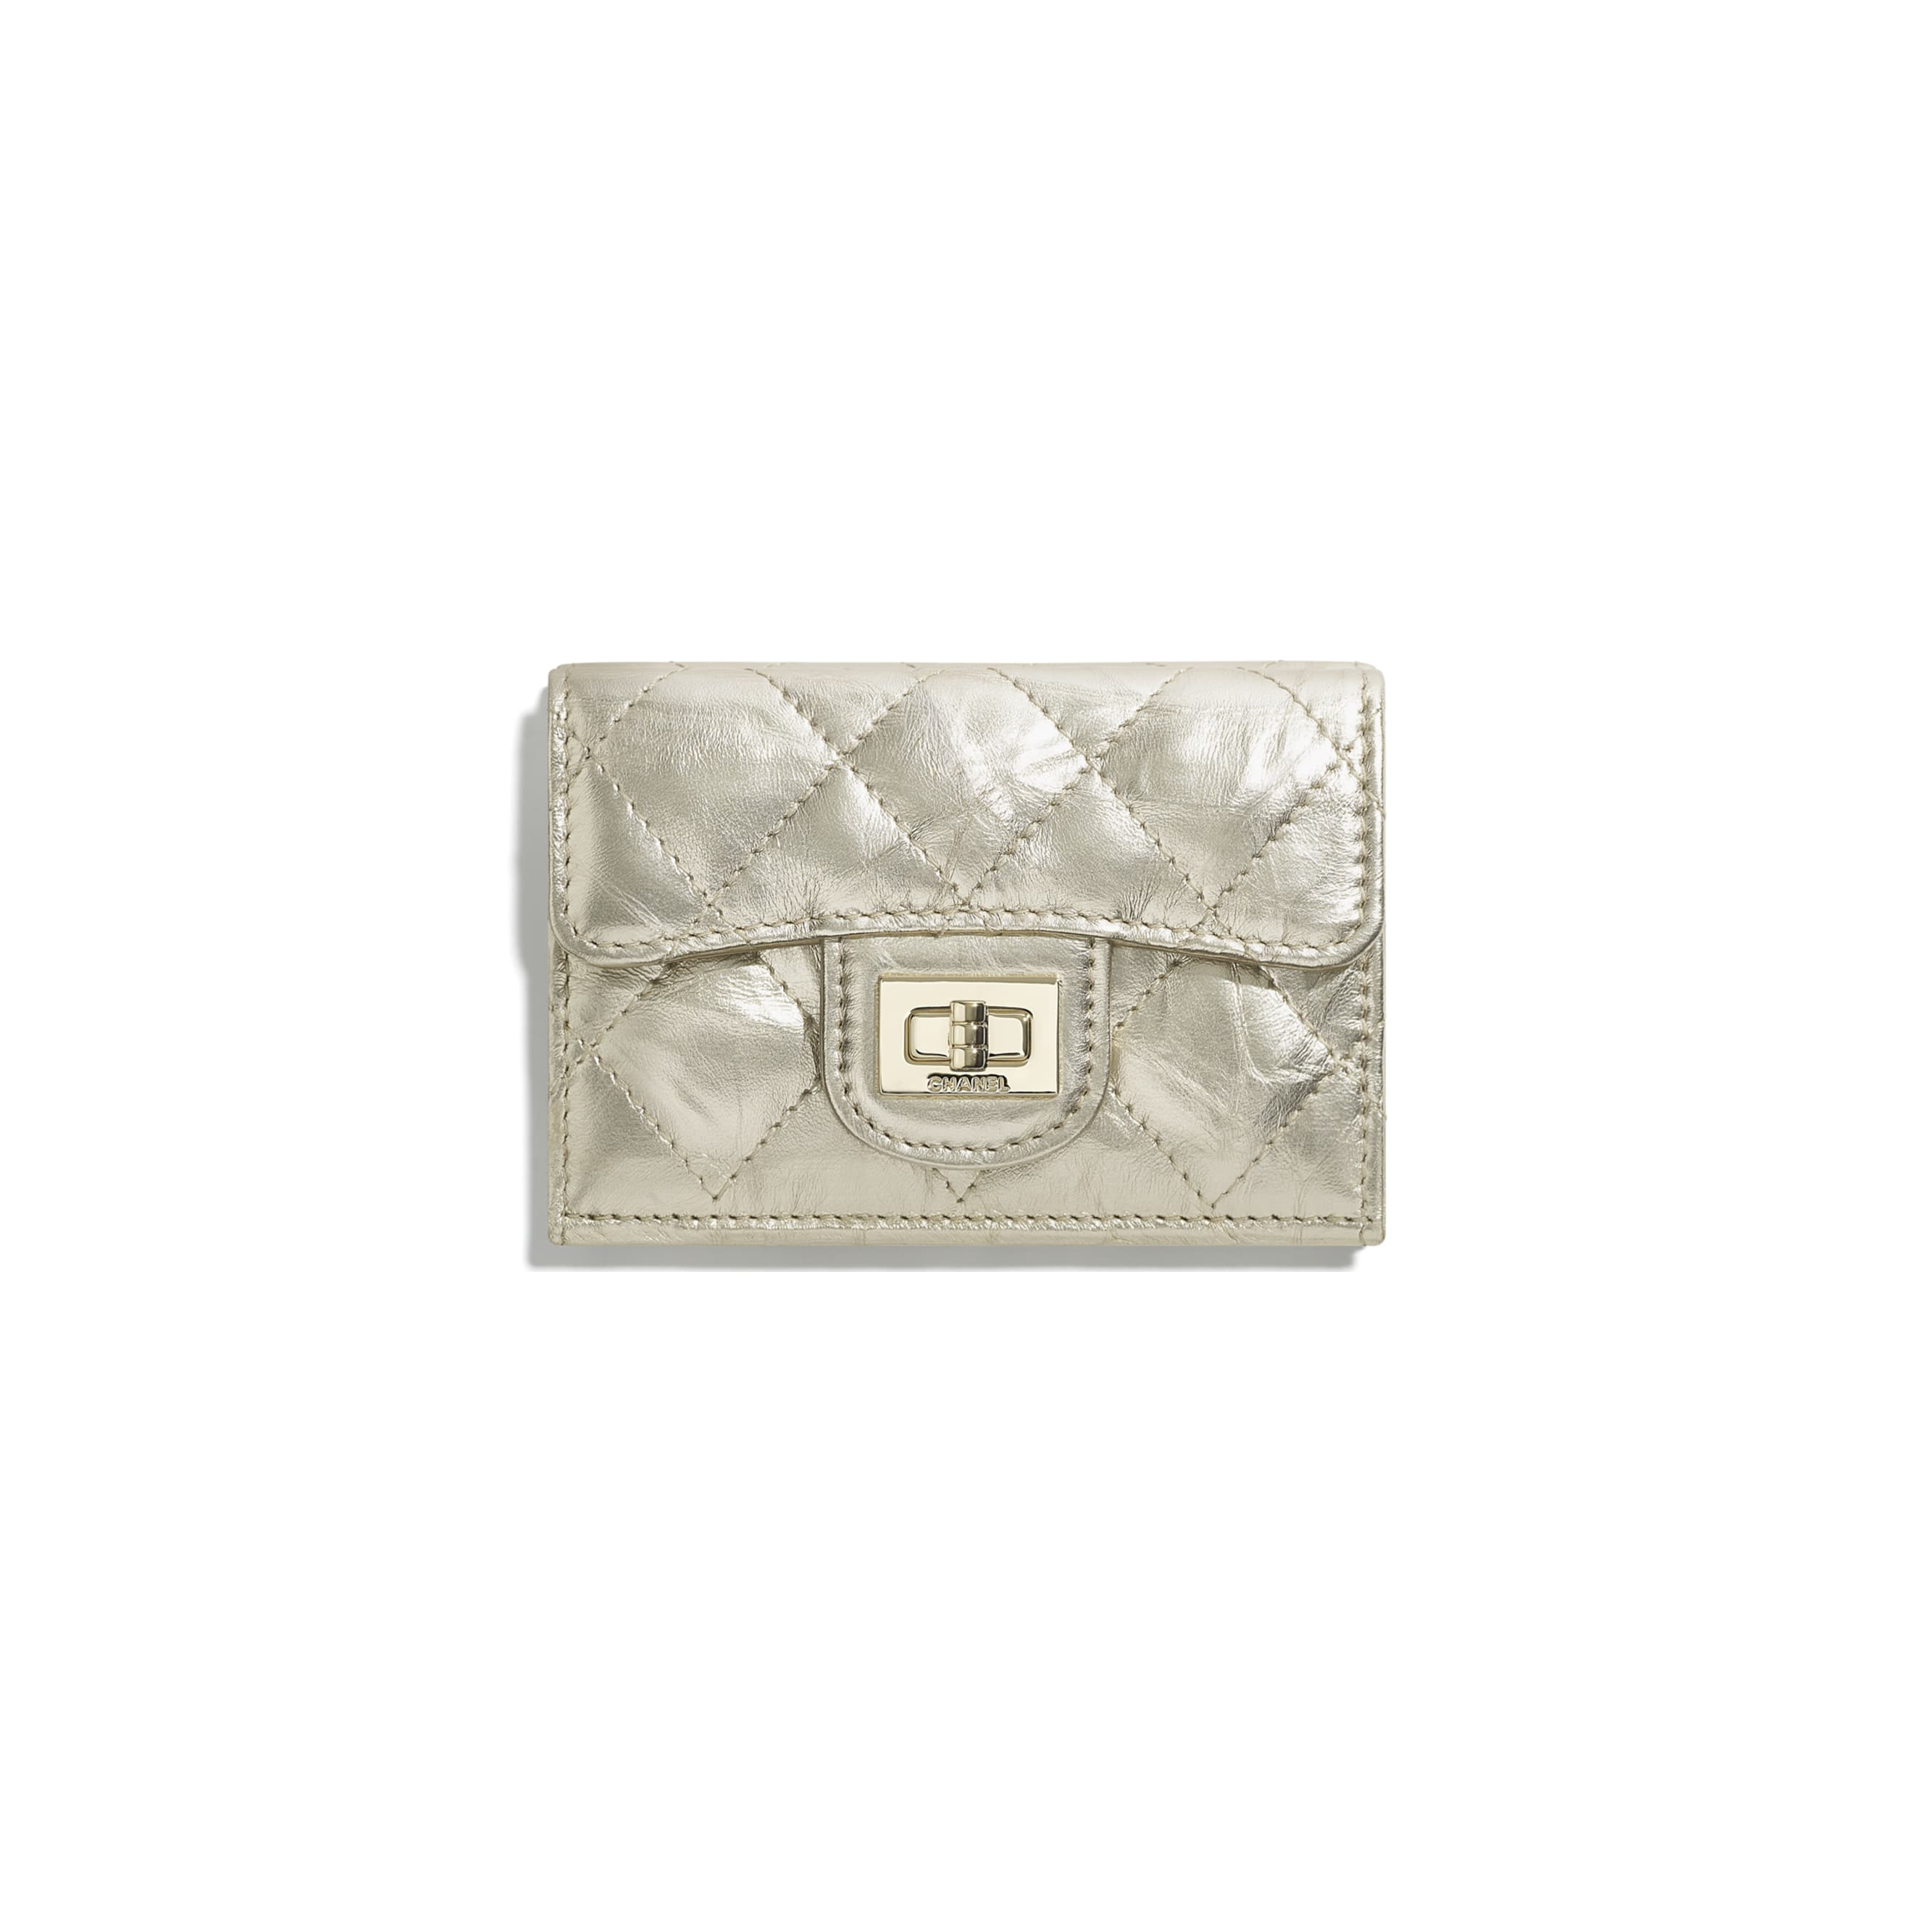 2.55 Small Flap Wallet - Light Gold - Metallic Crumpled Calfskin & Gold-Tone Metal - CHANEL - Default view - see standard sized version